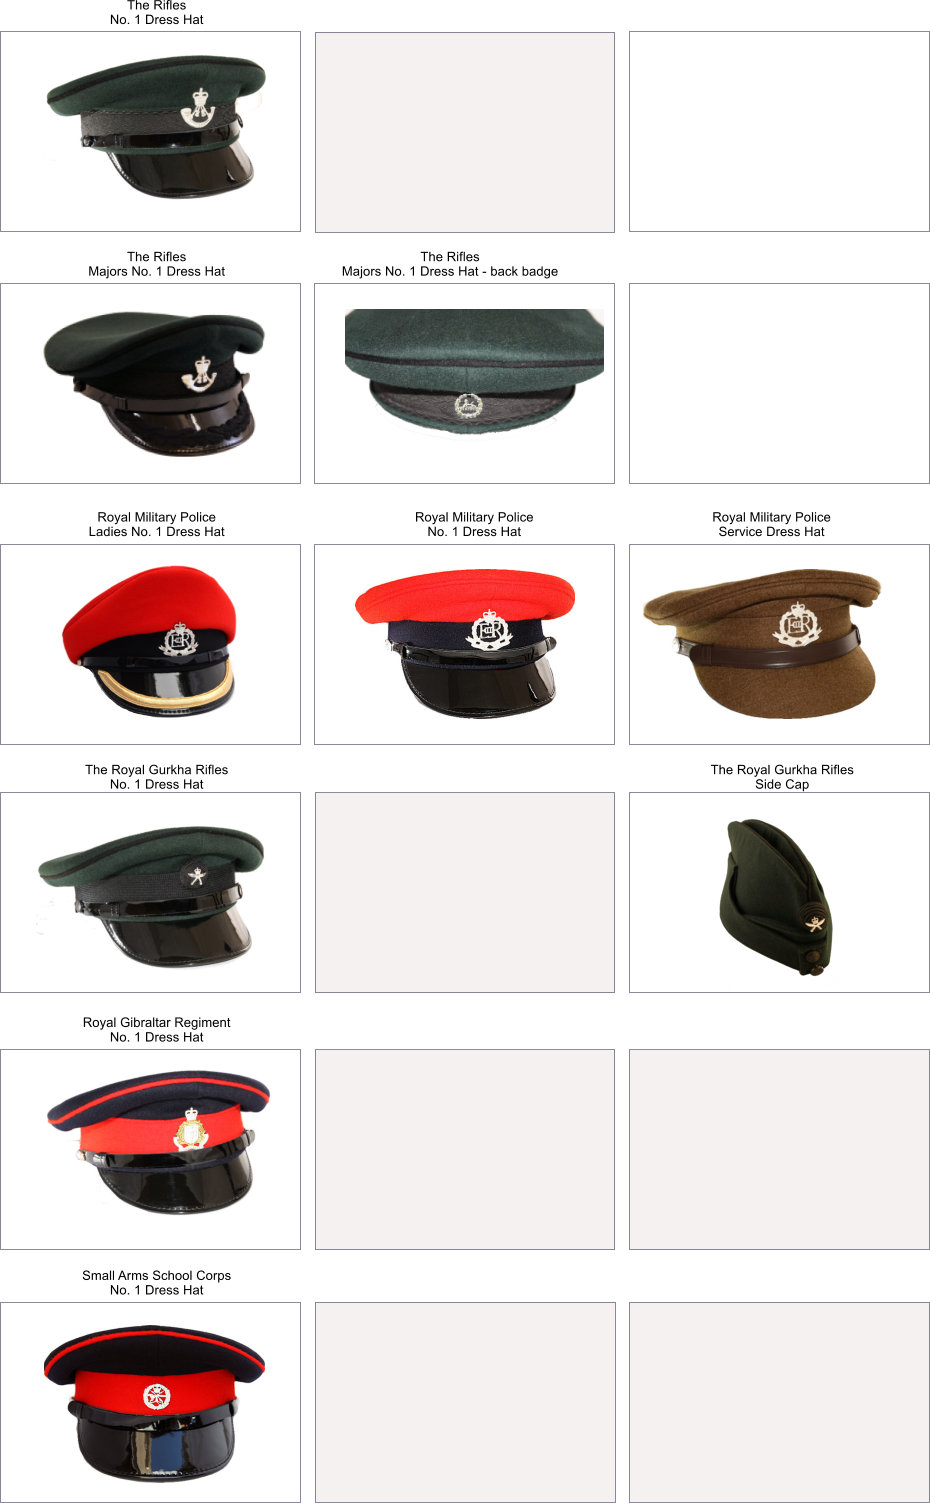 British Army headwear made by cooper Stevens